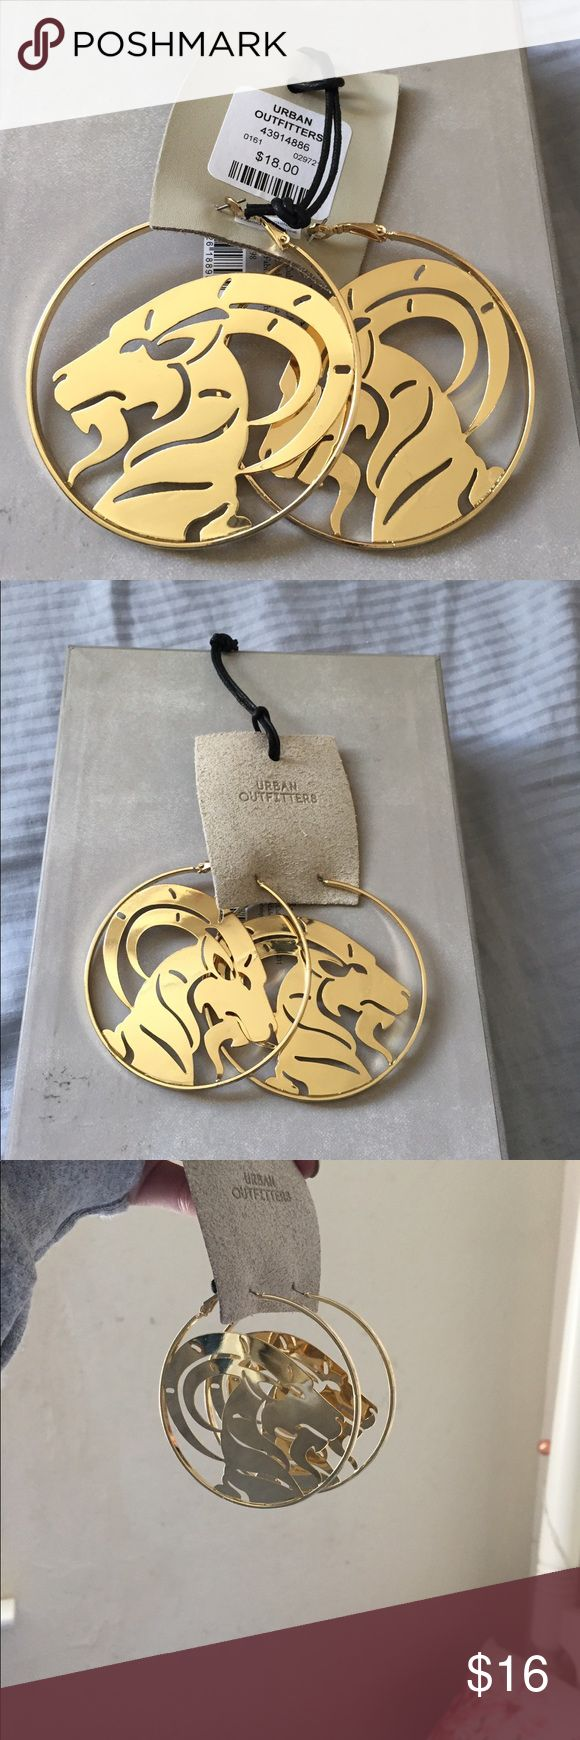 • nwt UO capricorn earrings • capricorn star sign hoop earrings from UO/urban outfitters. swanky and very 90s! you def don't have to be a capricorn to wear these. they're large and a total statement piece.   purchased for $18. Urban Outfitters Jewelry Earrings